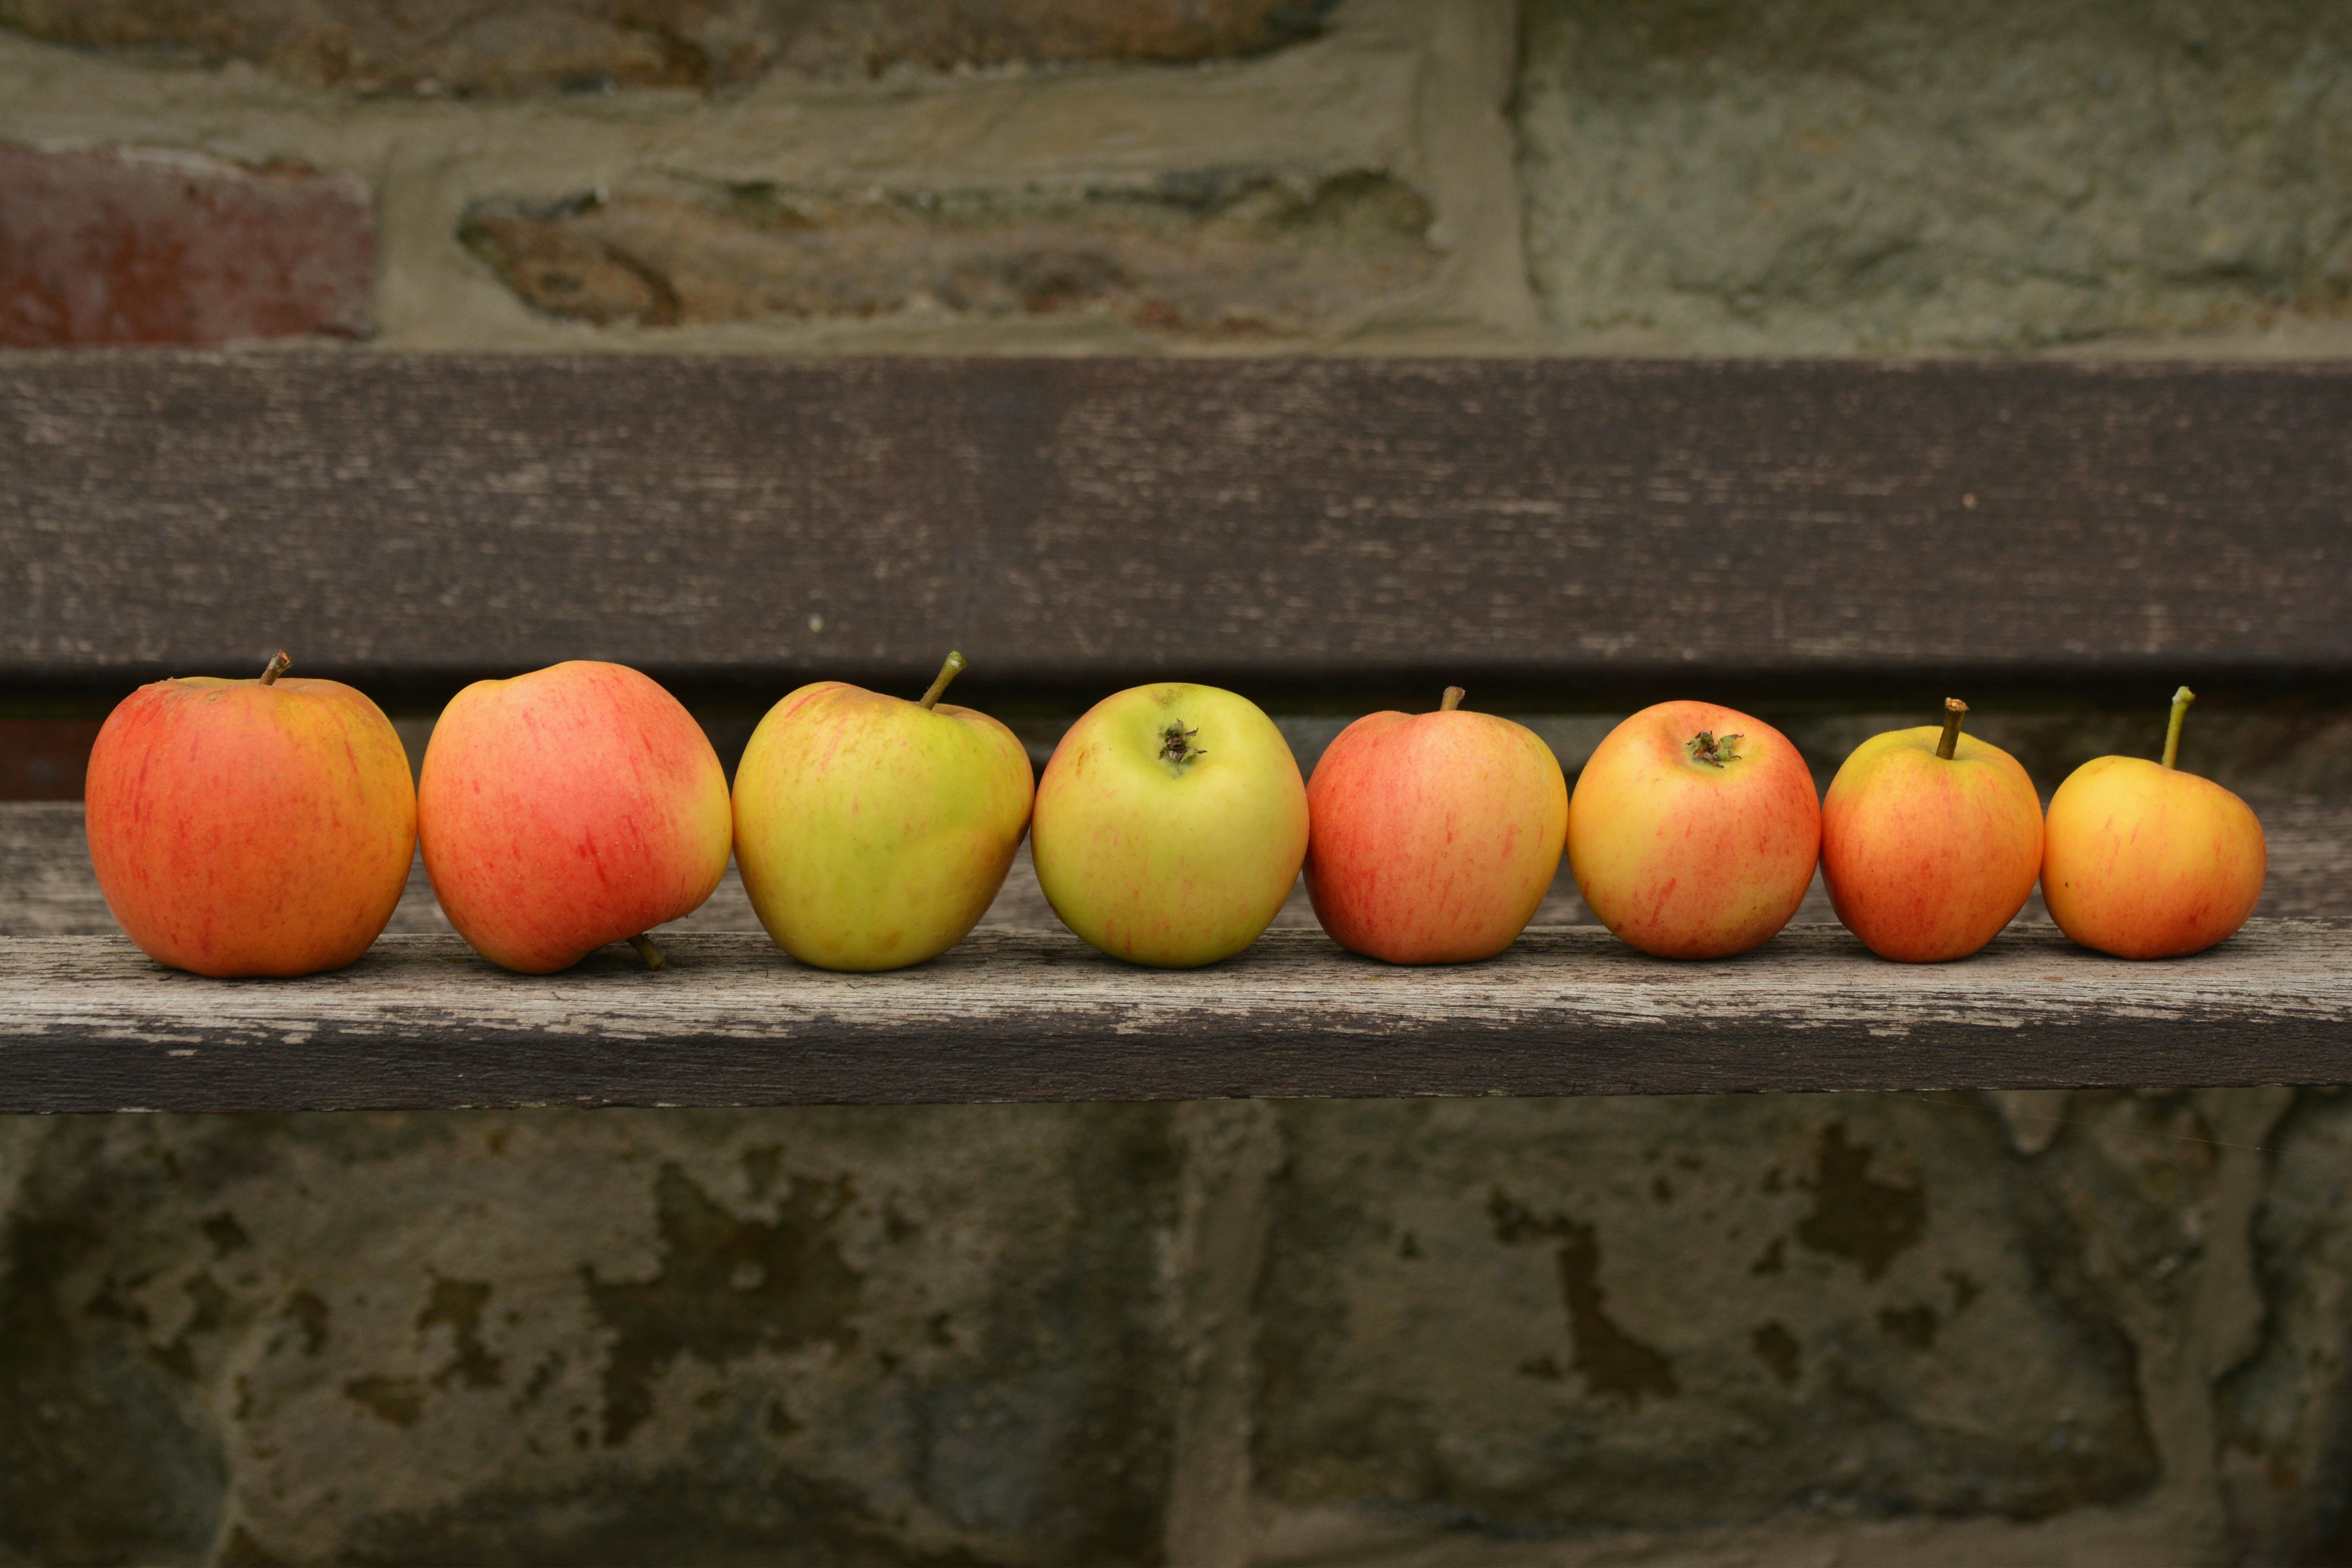 8 Apple Fruit on Top of Wooden Panel